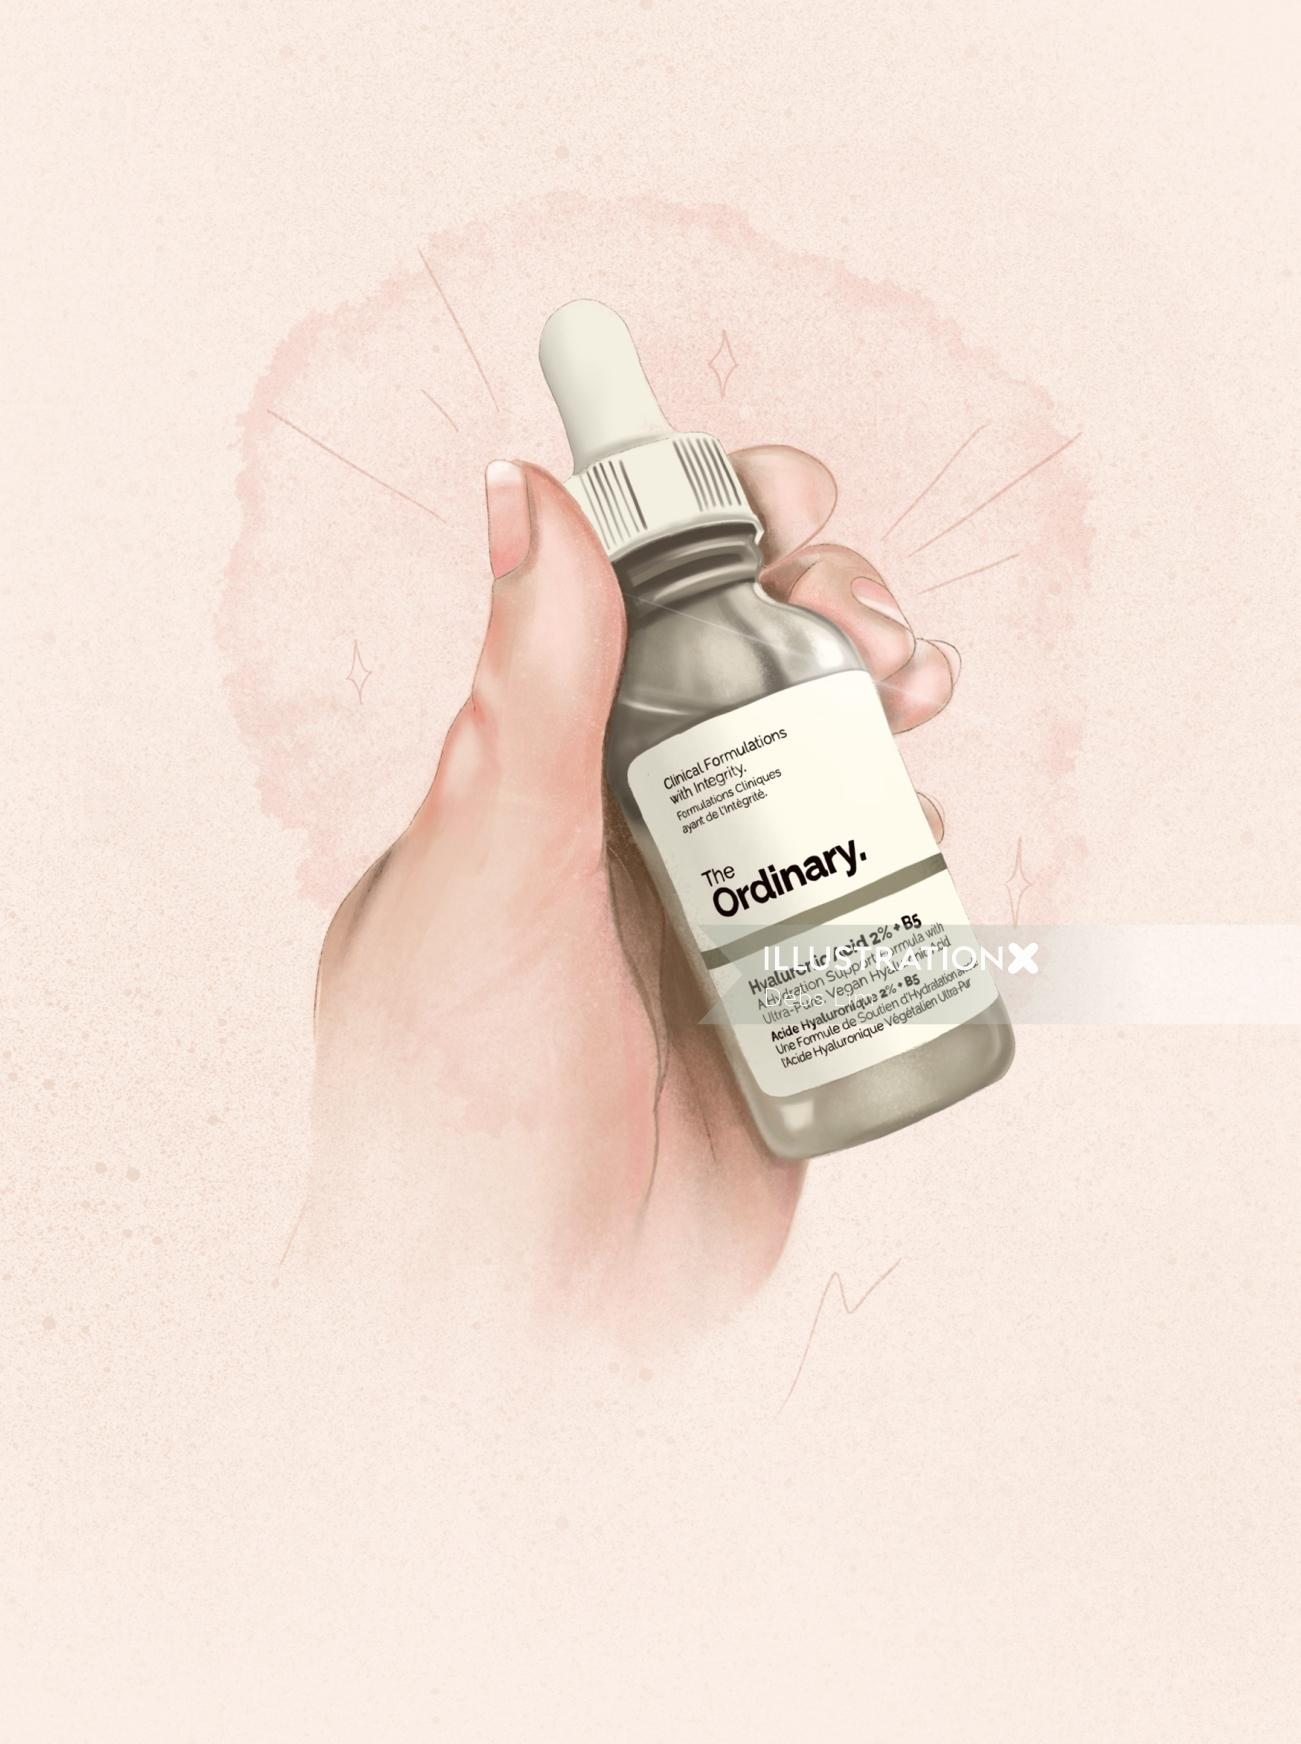 The Ordinary Serum beauty product